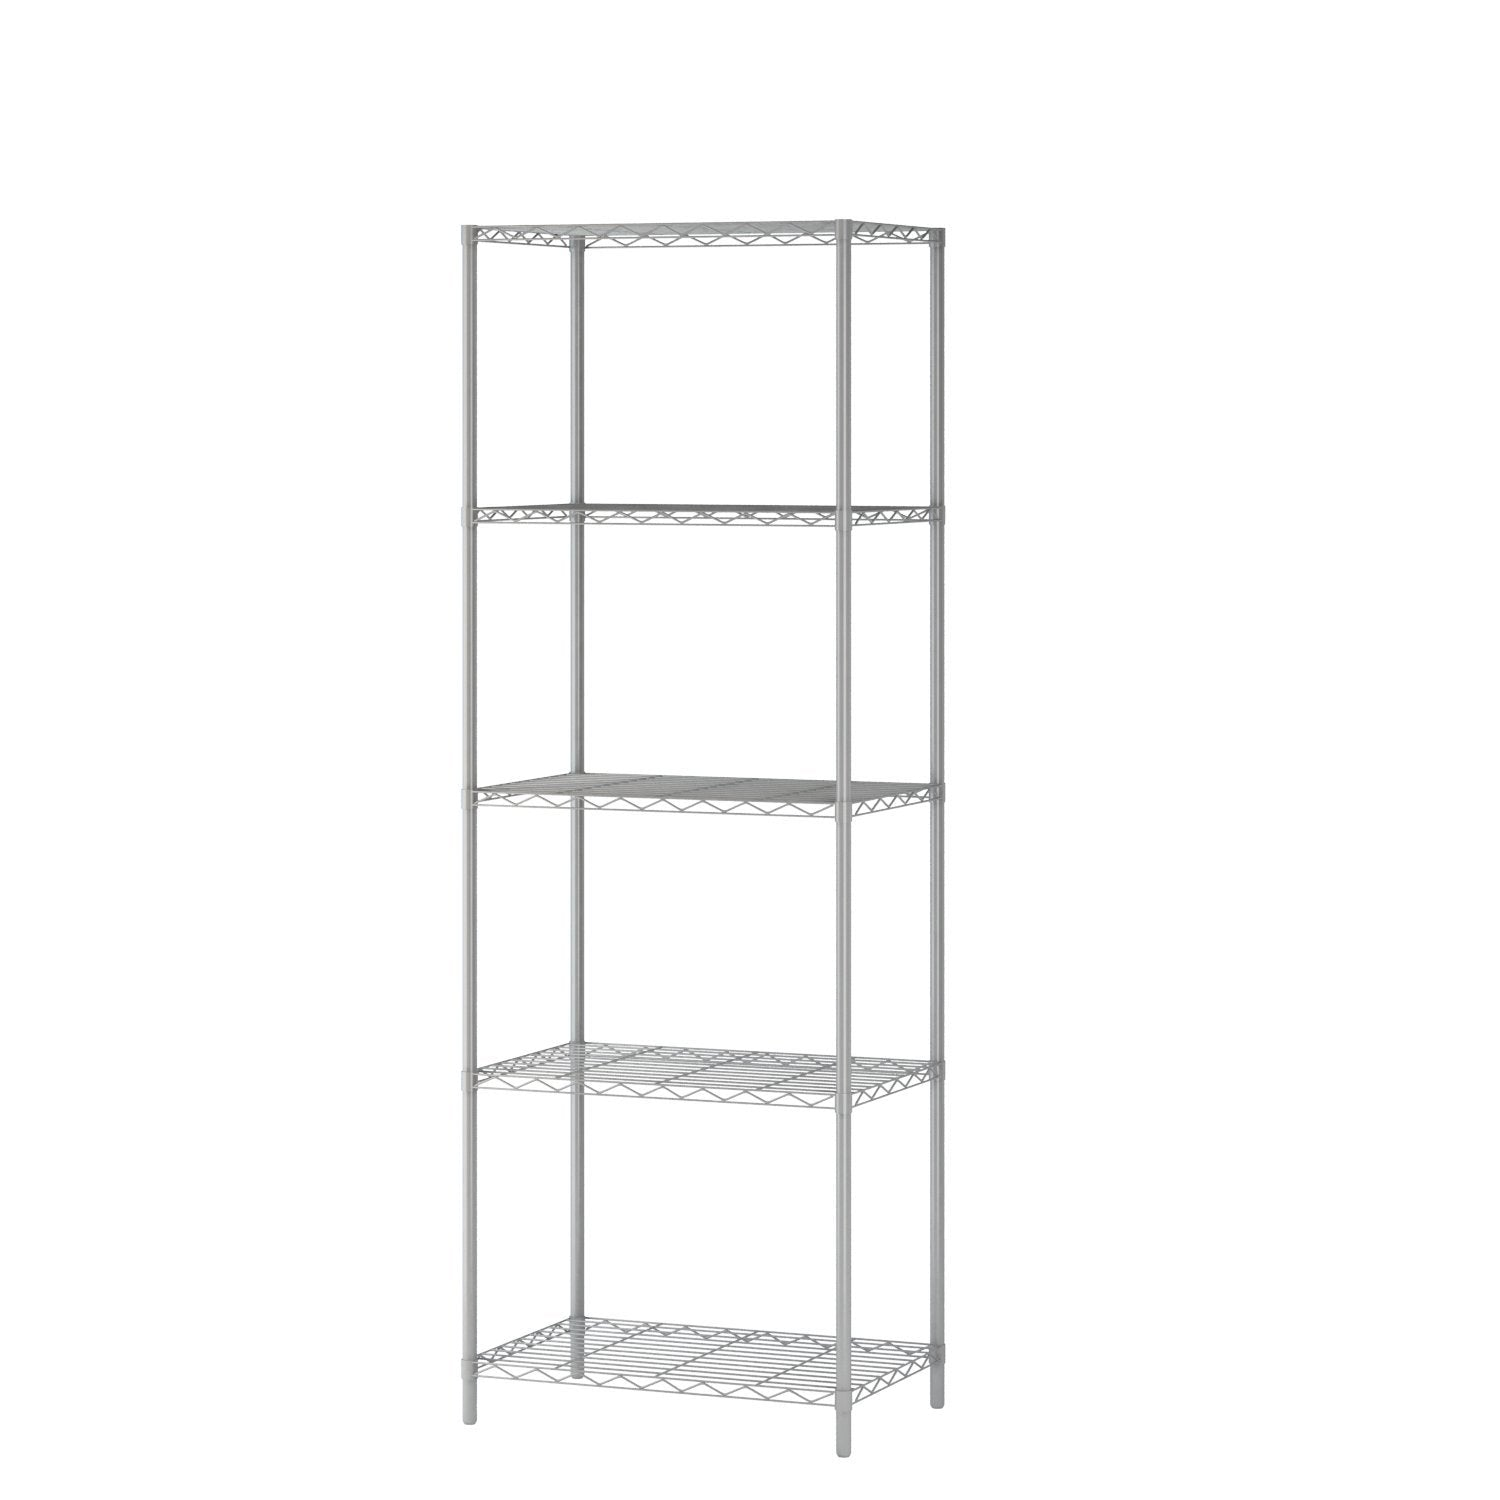 "Homebi 5-Tier Wire Shelving 5 Shelves Unit Metal Storage Rack Durable Organizer Perfect for Pantry Closet Kitchen Laundry Organization in Grey,21""Wx14""Dx61""H"